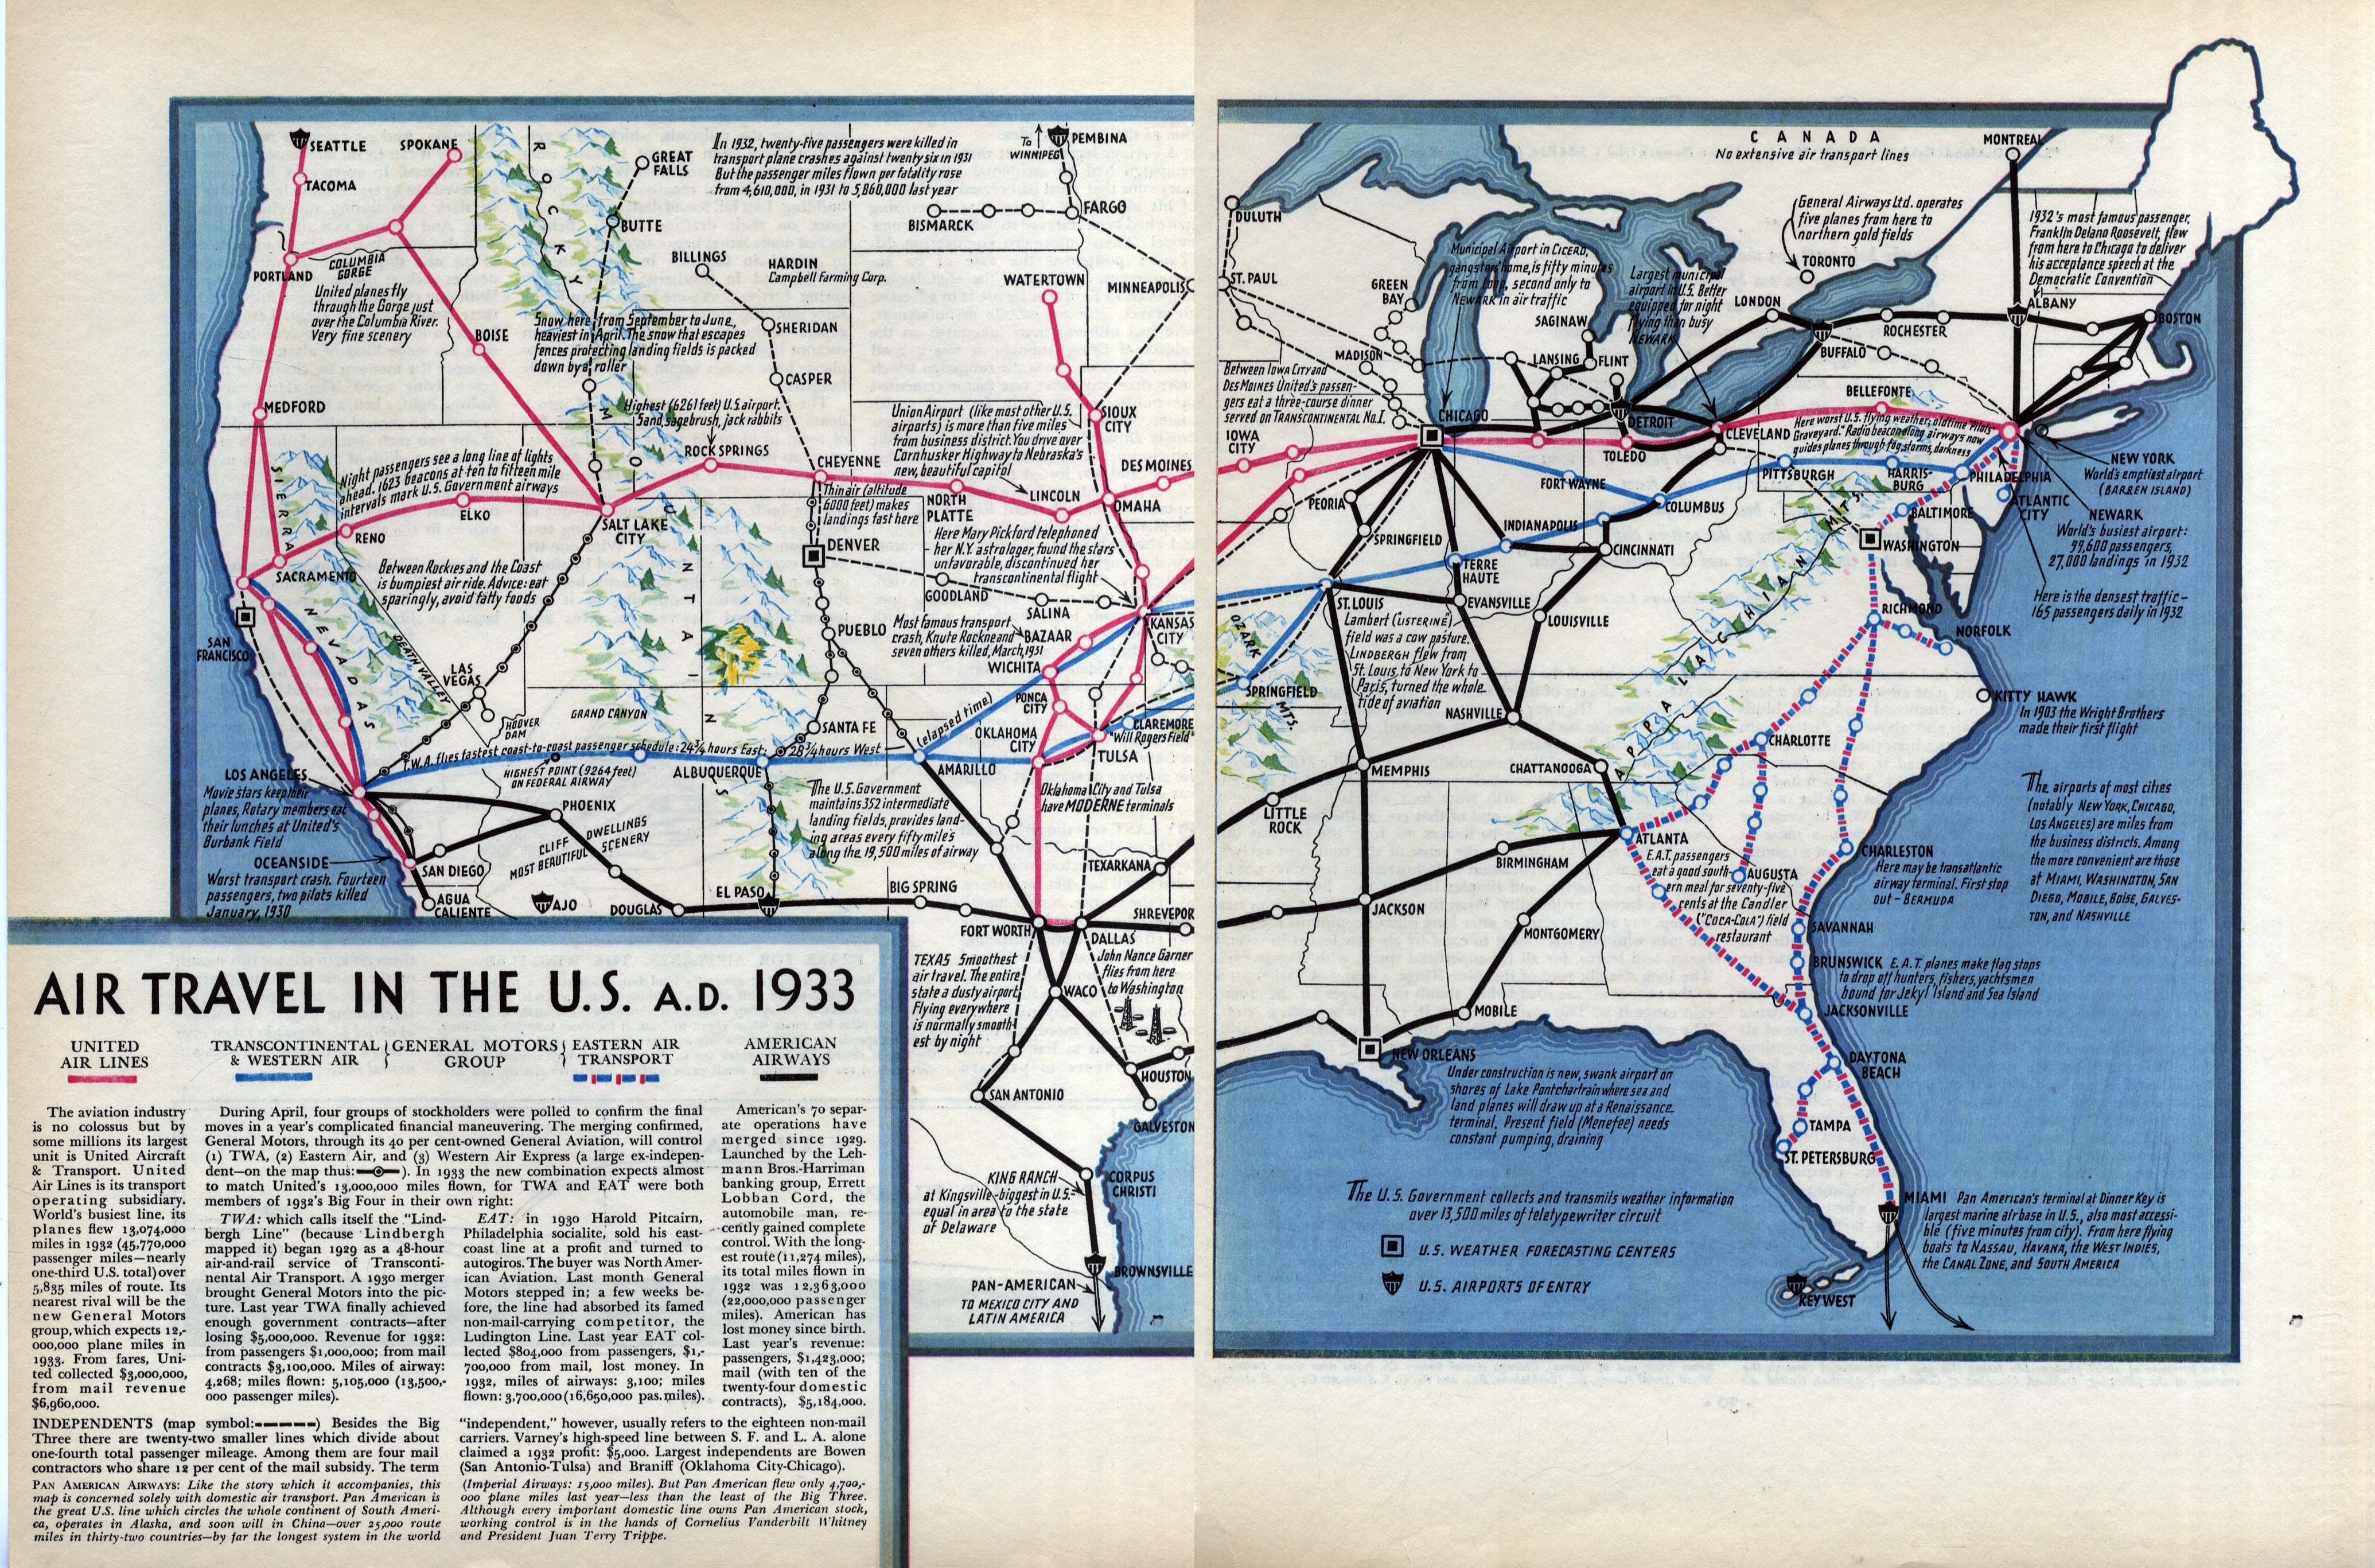 FORTUNE MAGAZINE Informational Images Maps - Us travel map weather